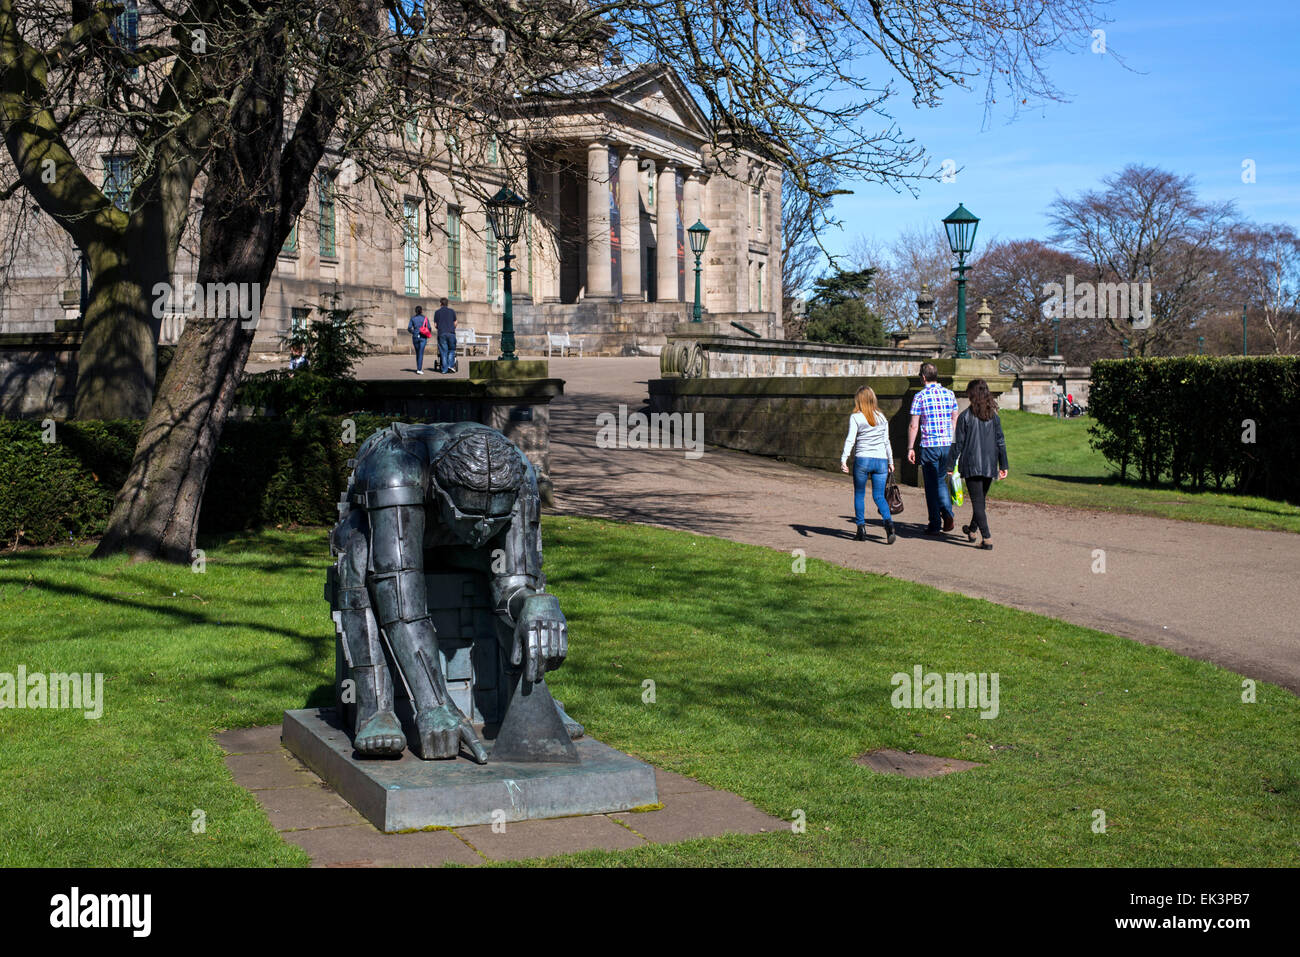 Visitors walking by the figure of Sir Isaac Newton by Sir Eduardo Paolozzi at the entrance to the Gallery of Modern Stock Photo